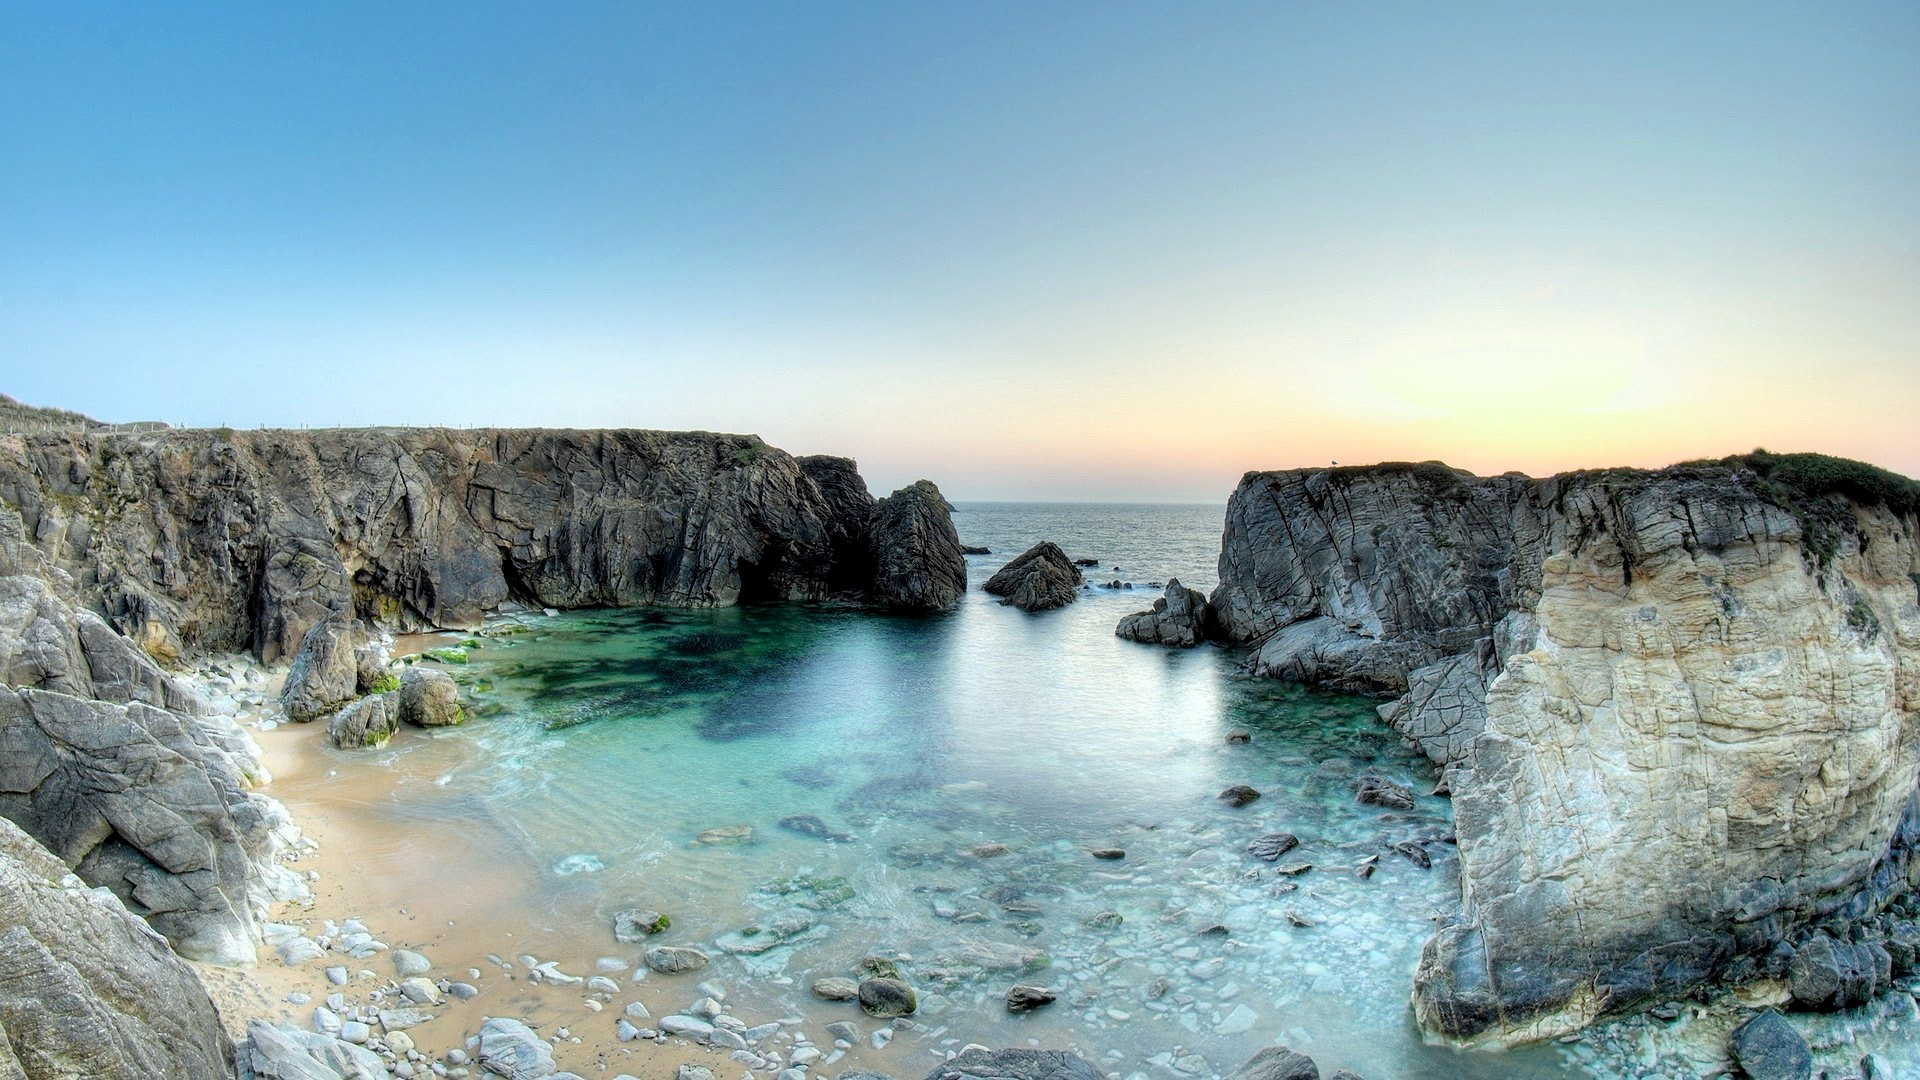 The Collection of Beautiful Coastal Scenery Photographs (7)